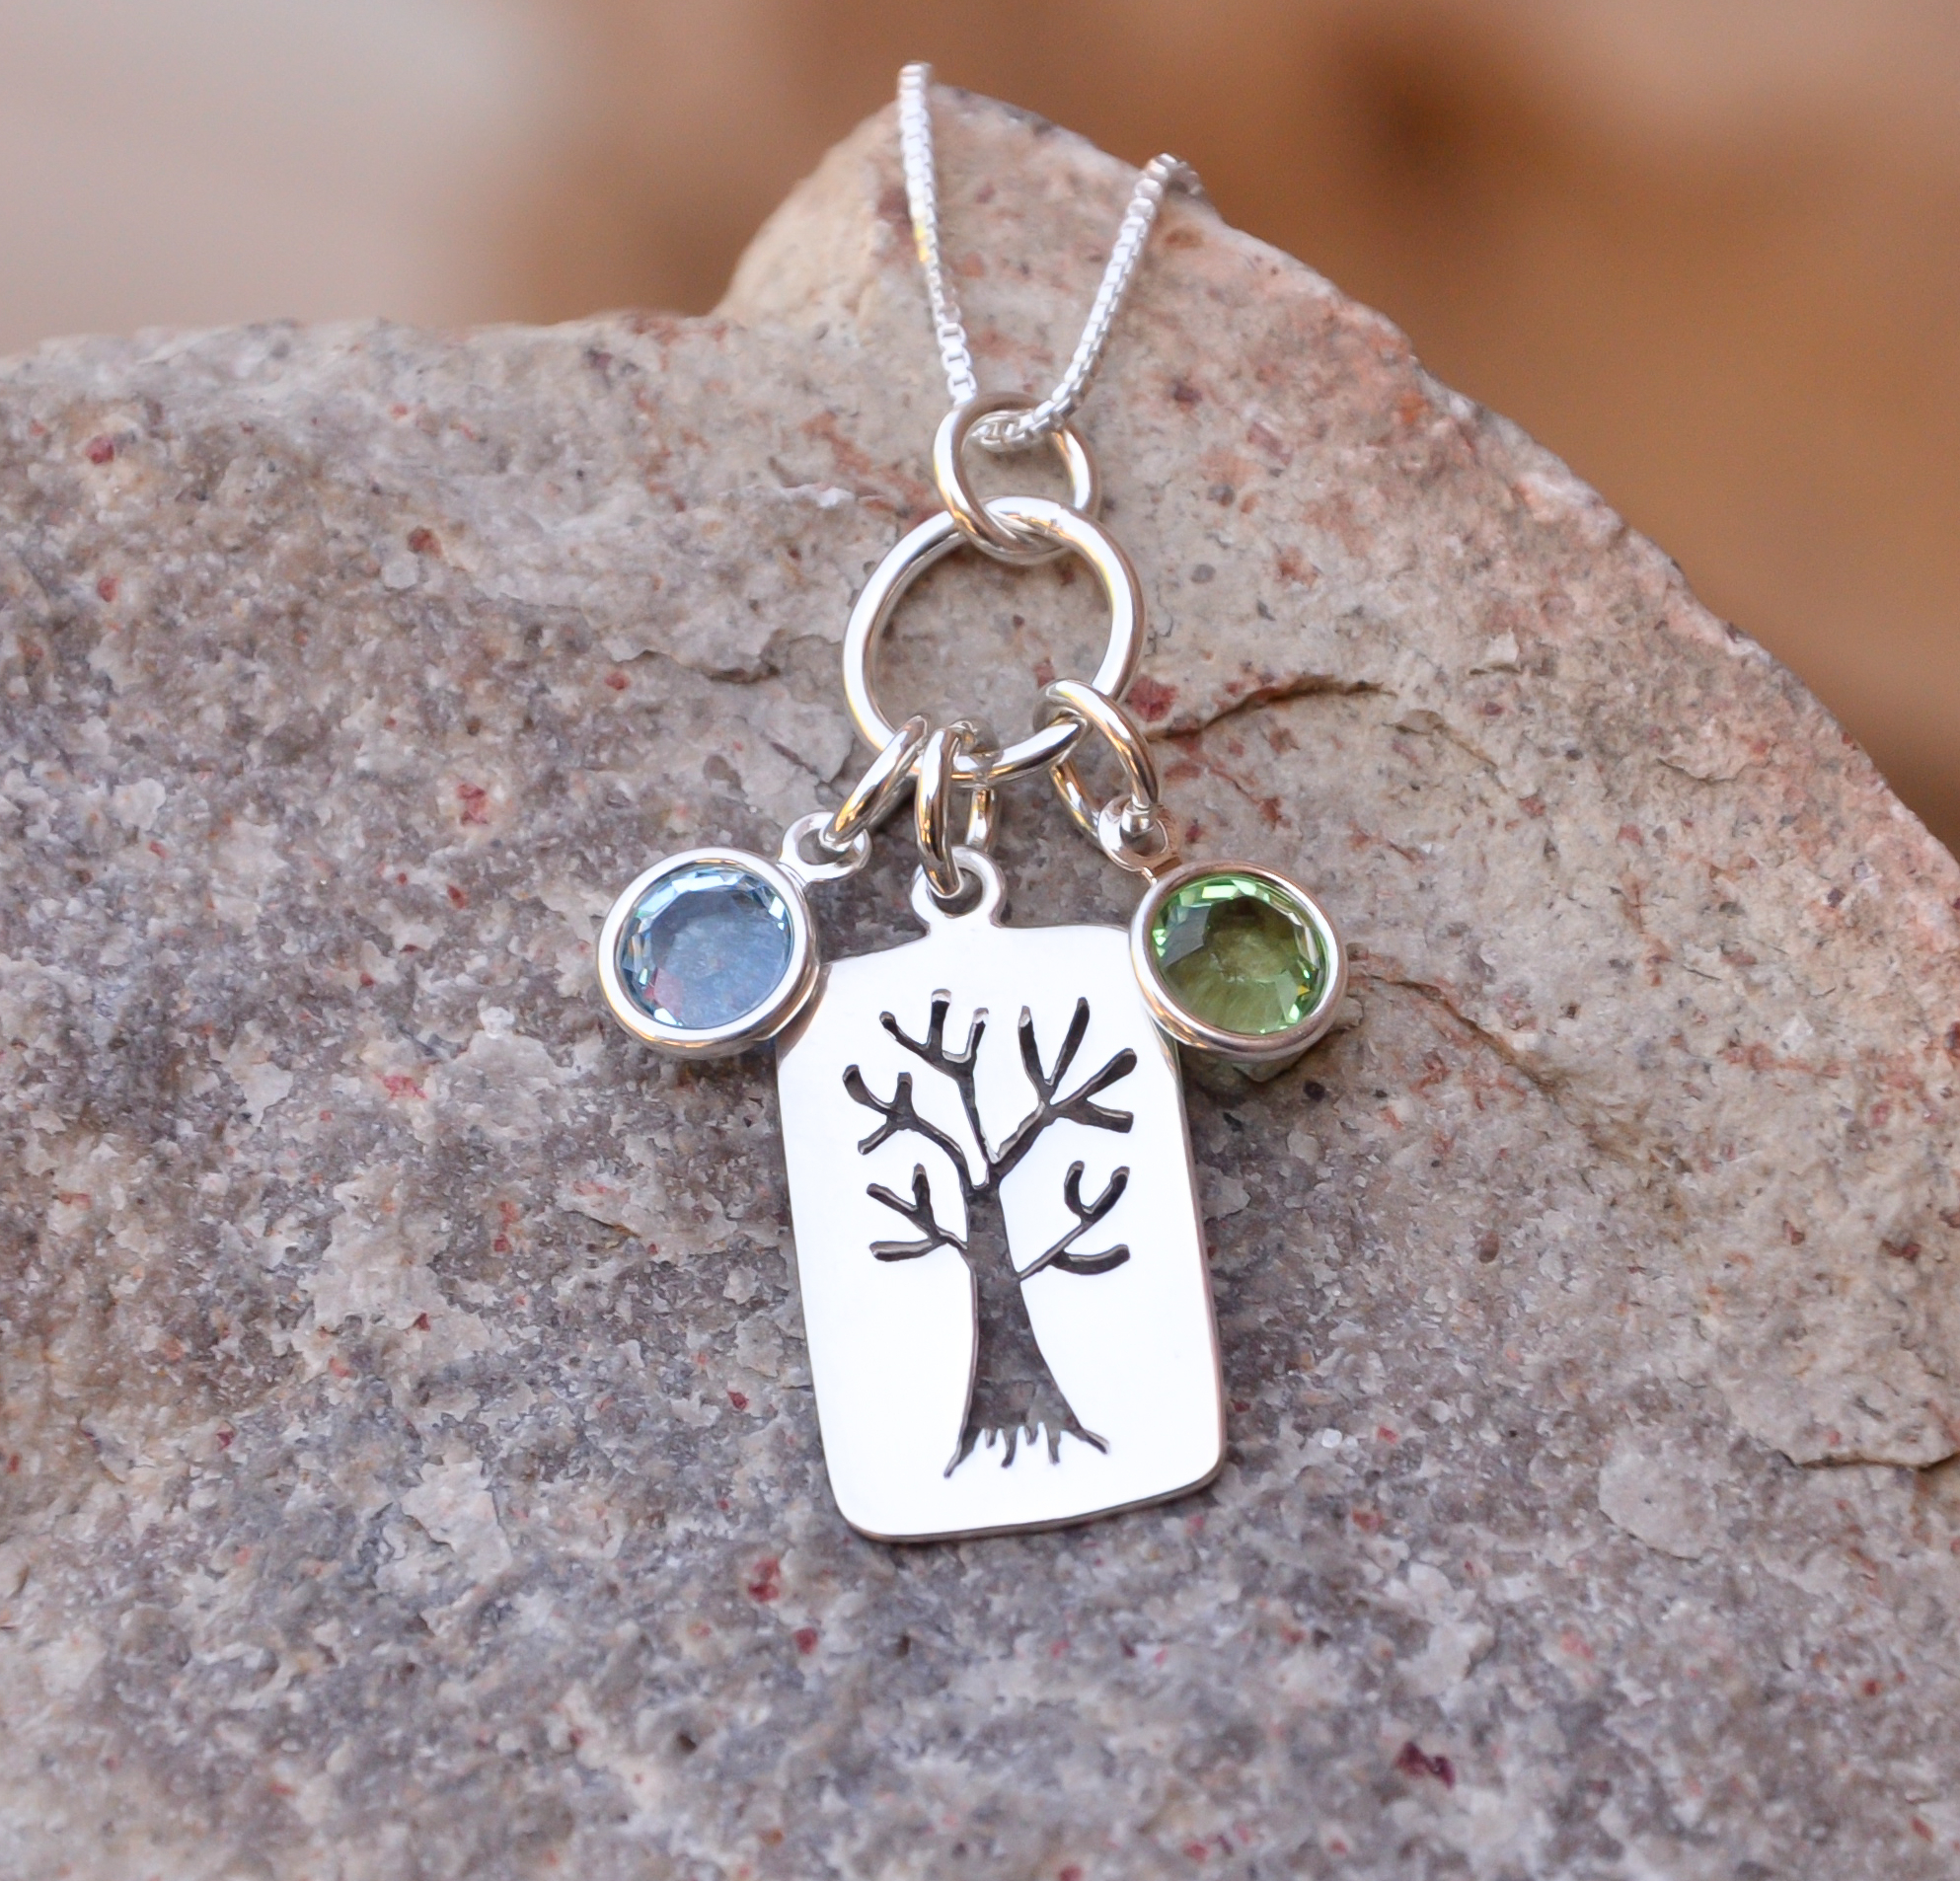 Family Tree Necklace With Regard To Most Recently Released Dangling Family Tree Rings (View 10 of 25)